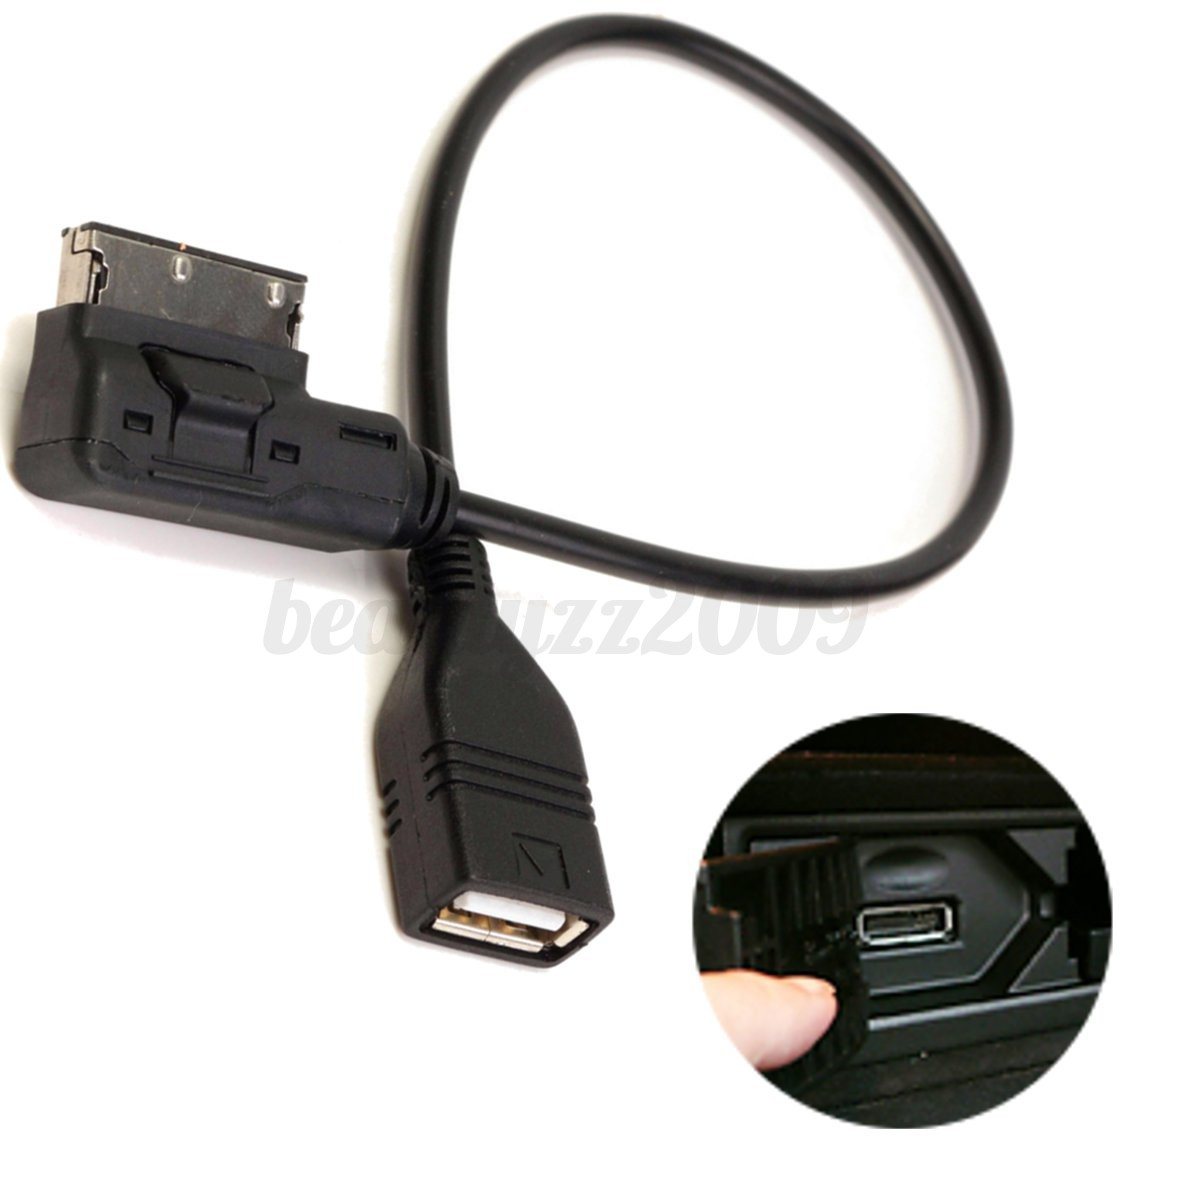 Aux media interface usb cable ami adapter flash drive mp3 for Aux cable mercedes benz c230